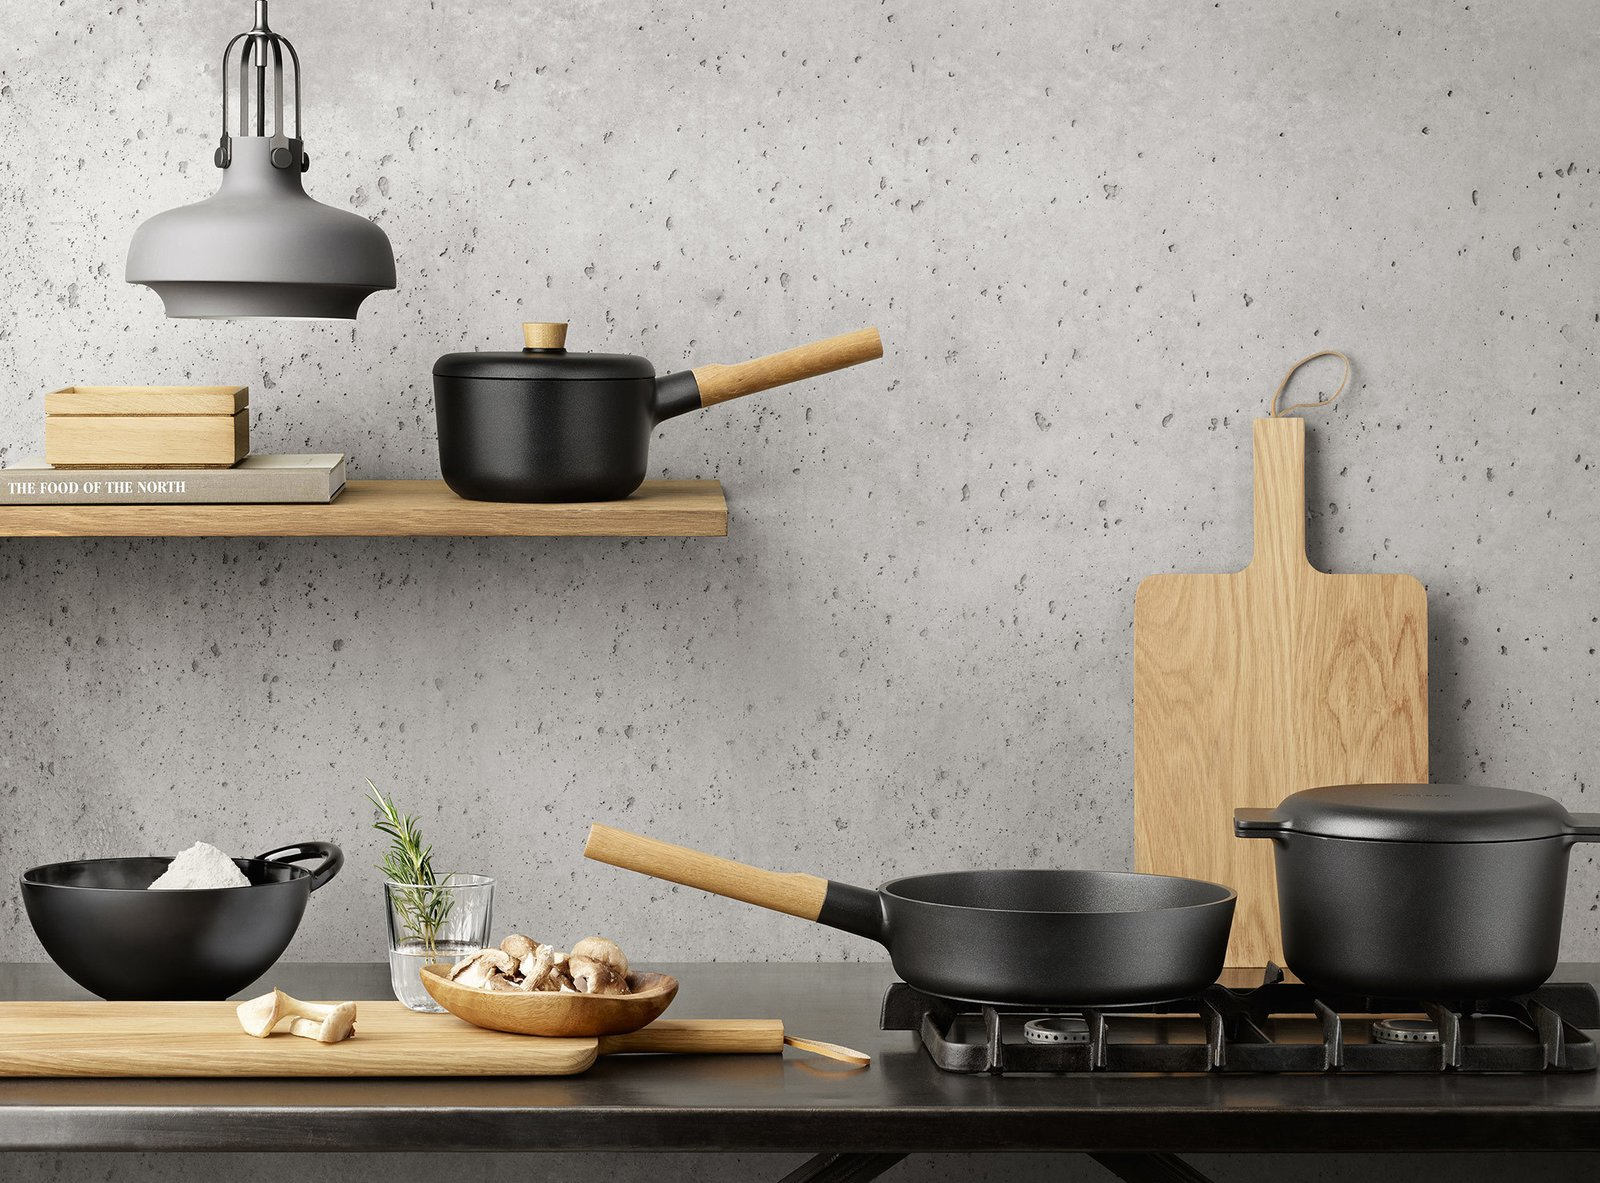 Photo 1 of 5 in The Nordic Kitchen Series